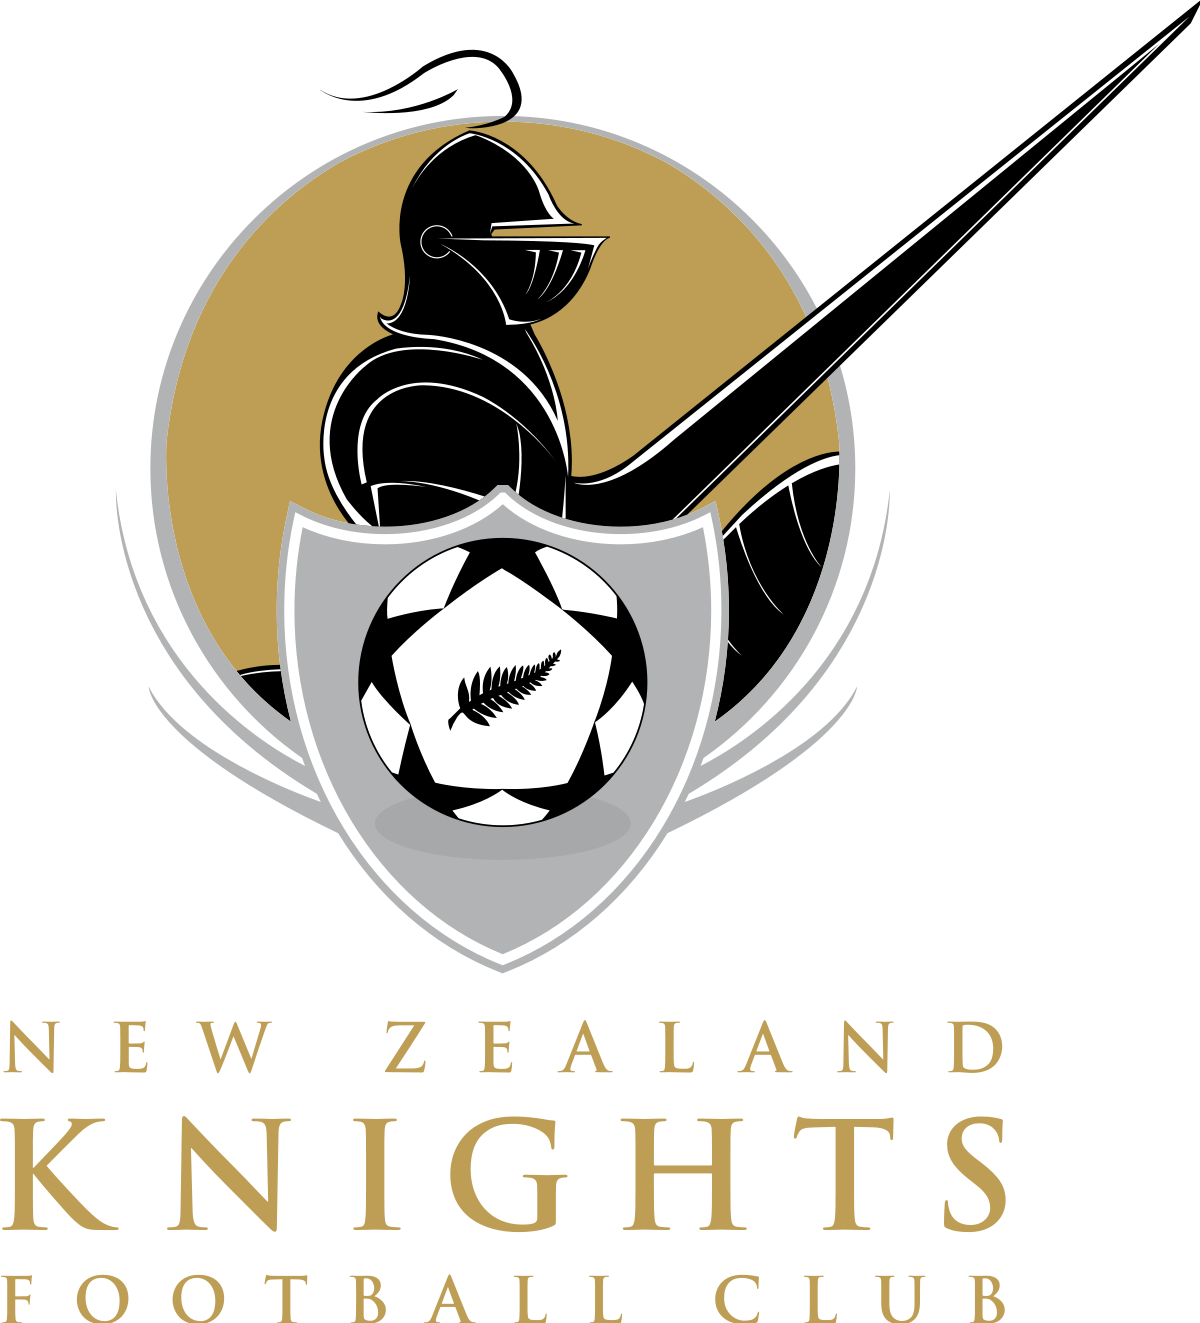 New zealand knights fc. Knight clipart side view